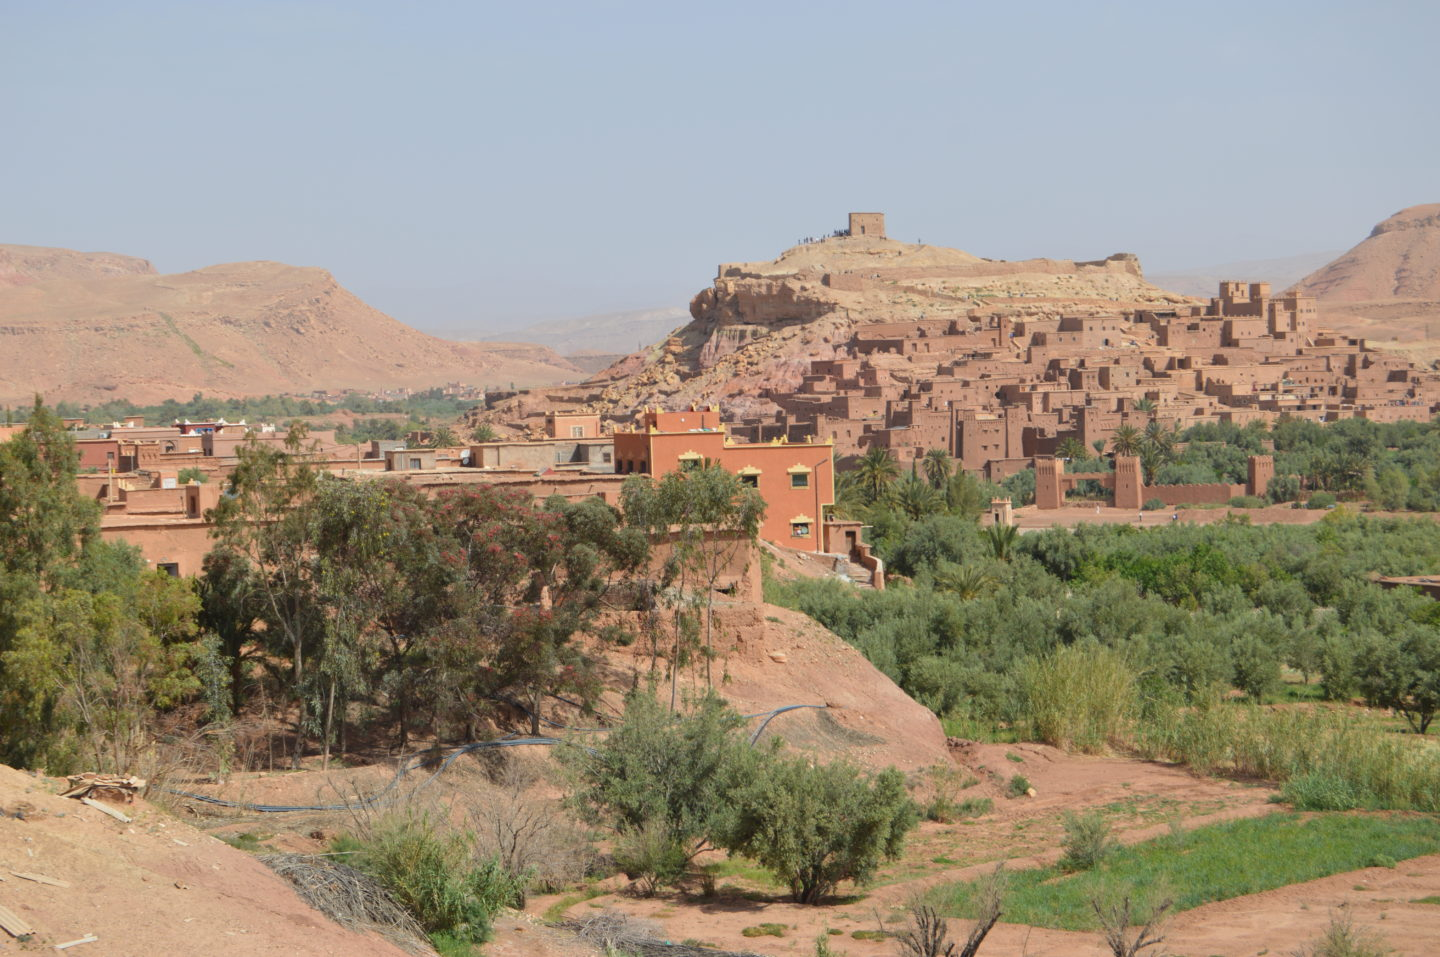 The gorgeous views overlooking Ben Ait Haddou. These scenes are familiar if you have watched the Game of Thrones.